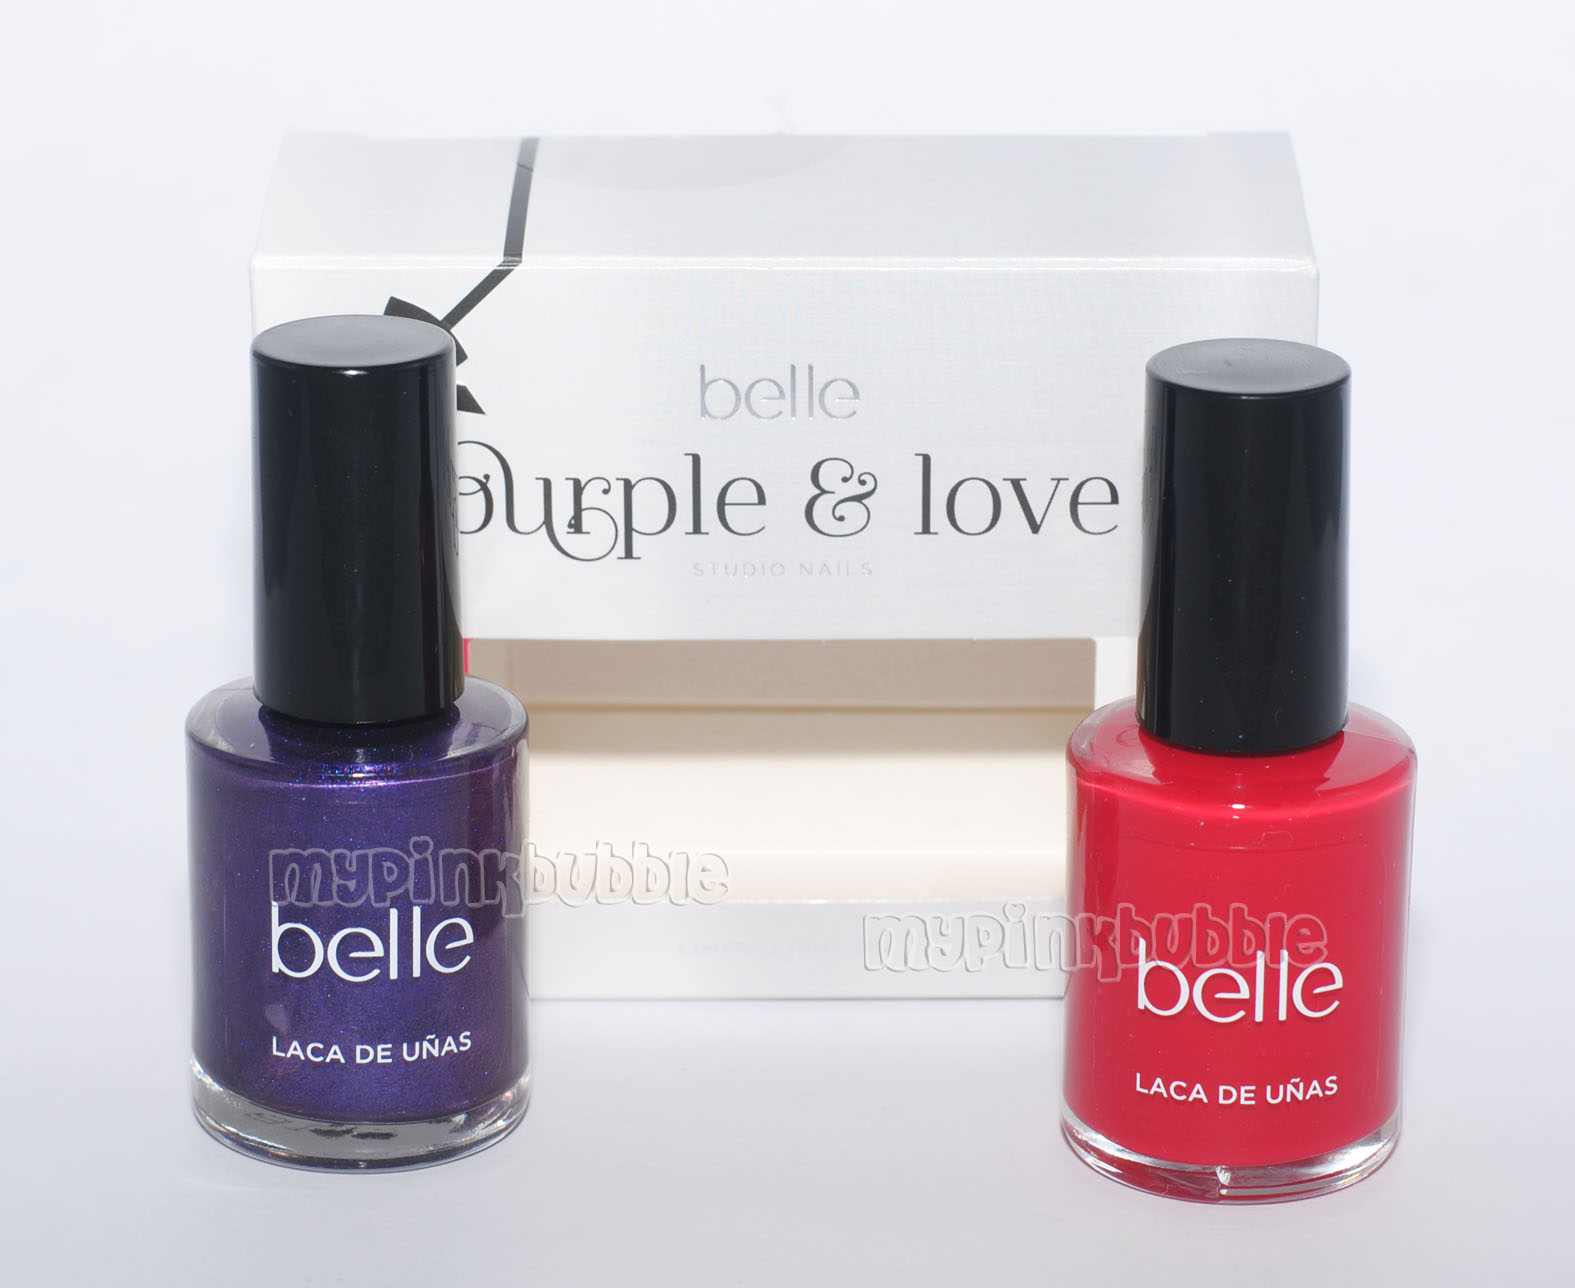 Belle Purple & love esmaltes